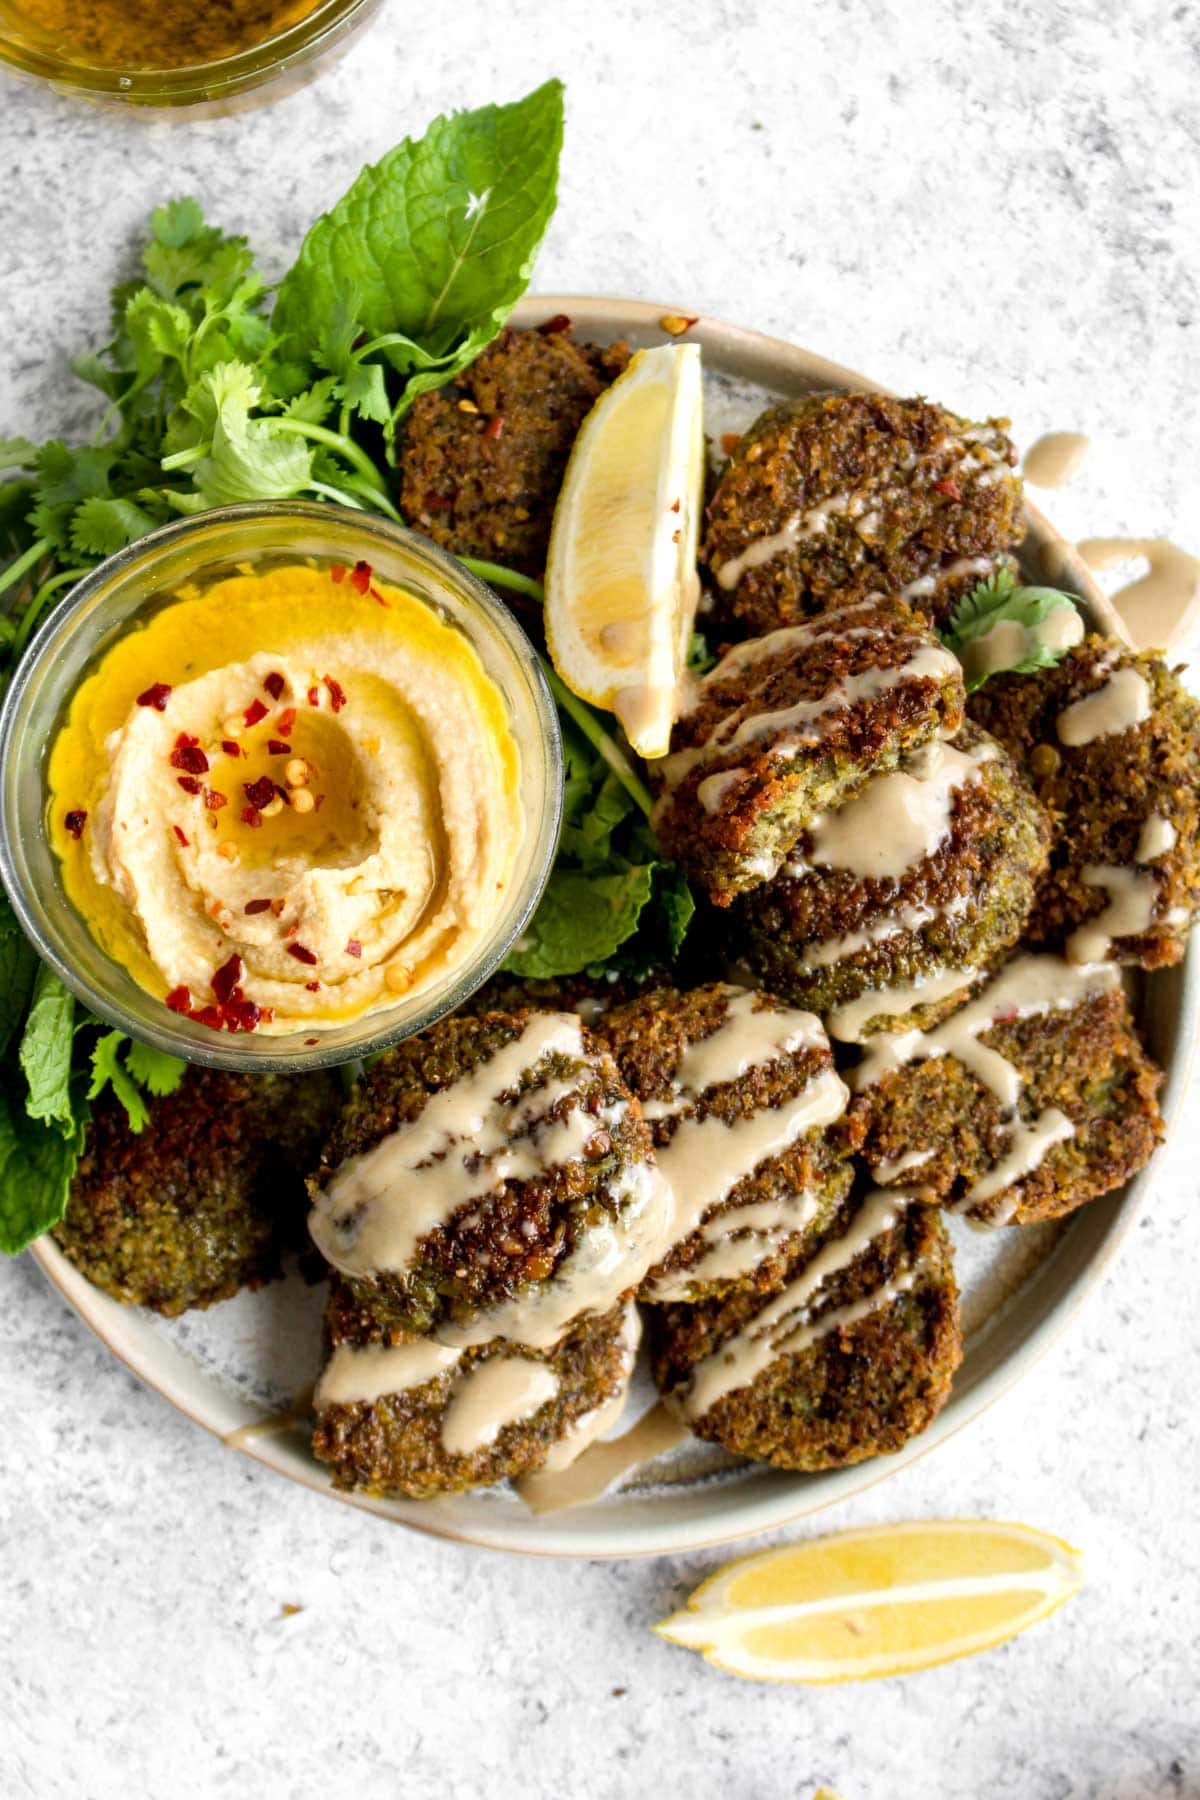 A plate of baked lentil falafel with lemon and tahini sauce.